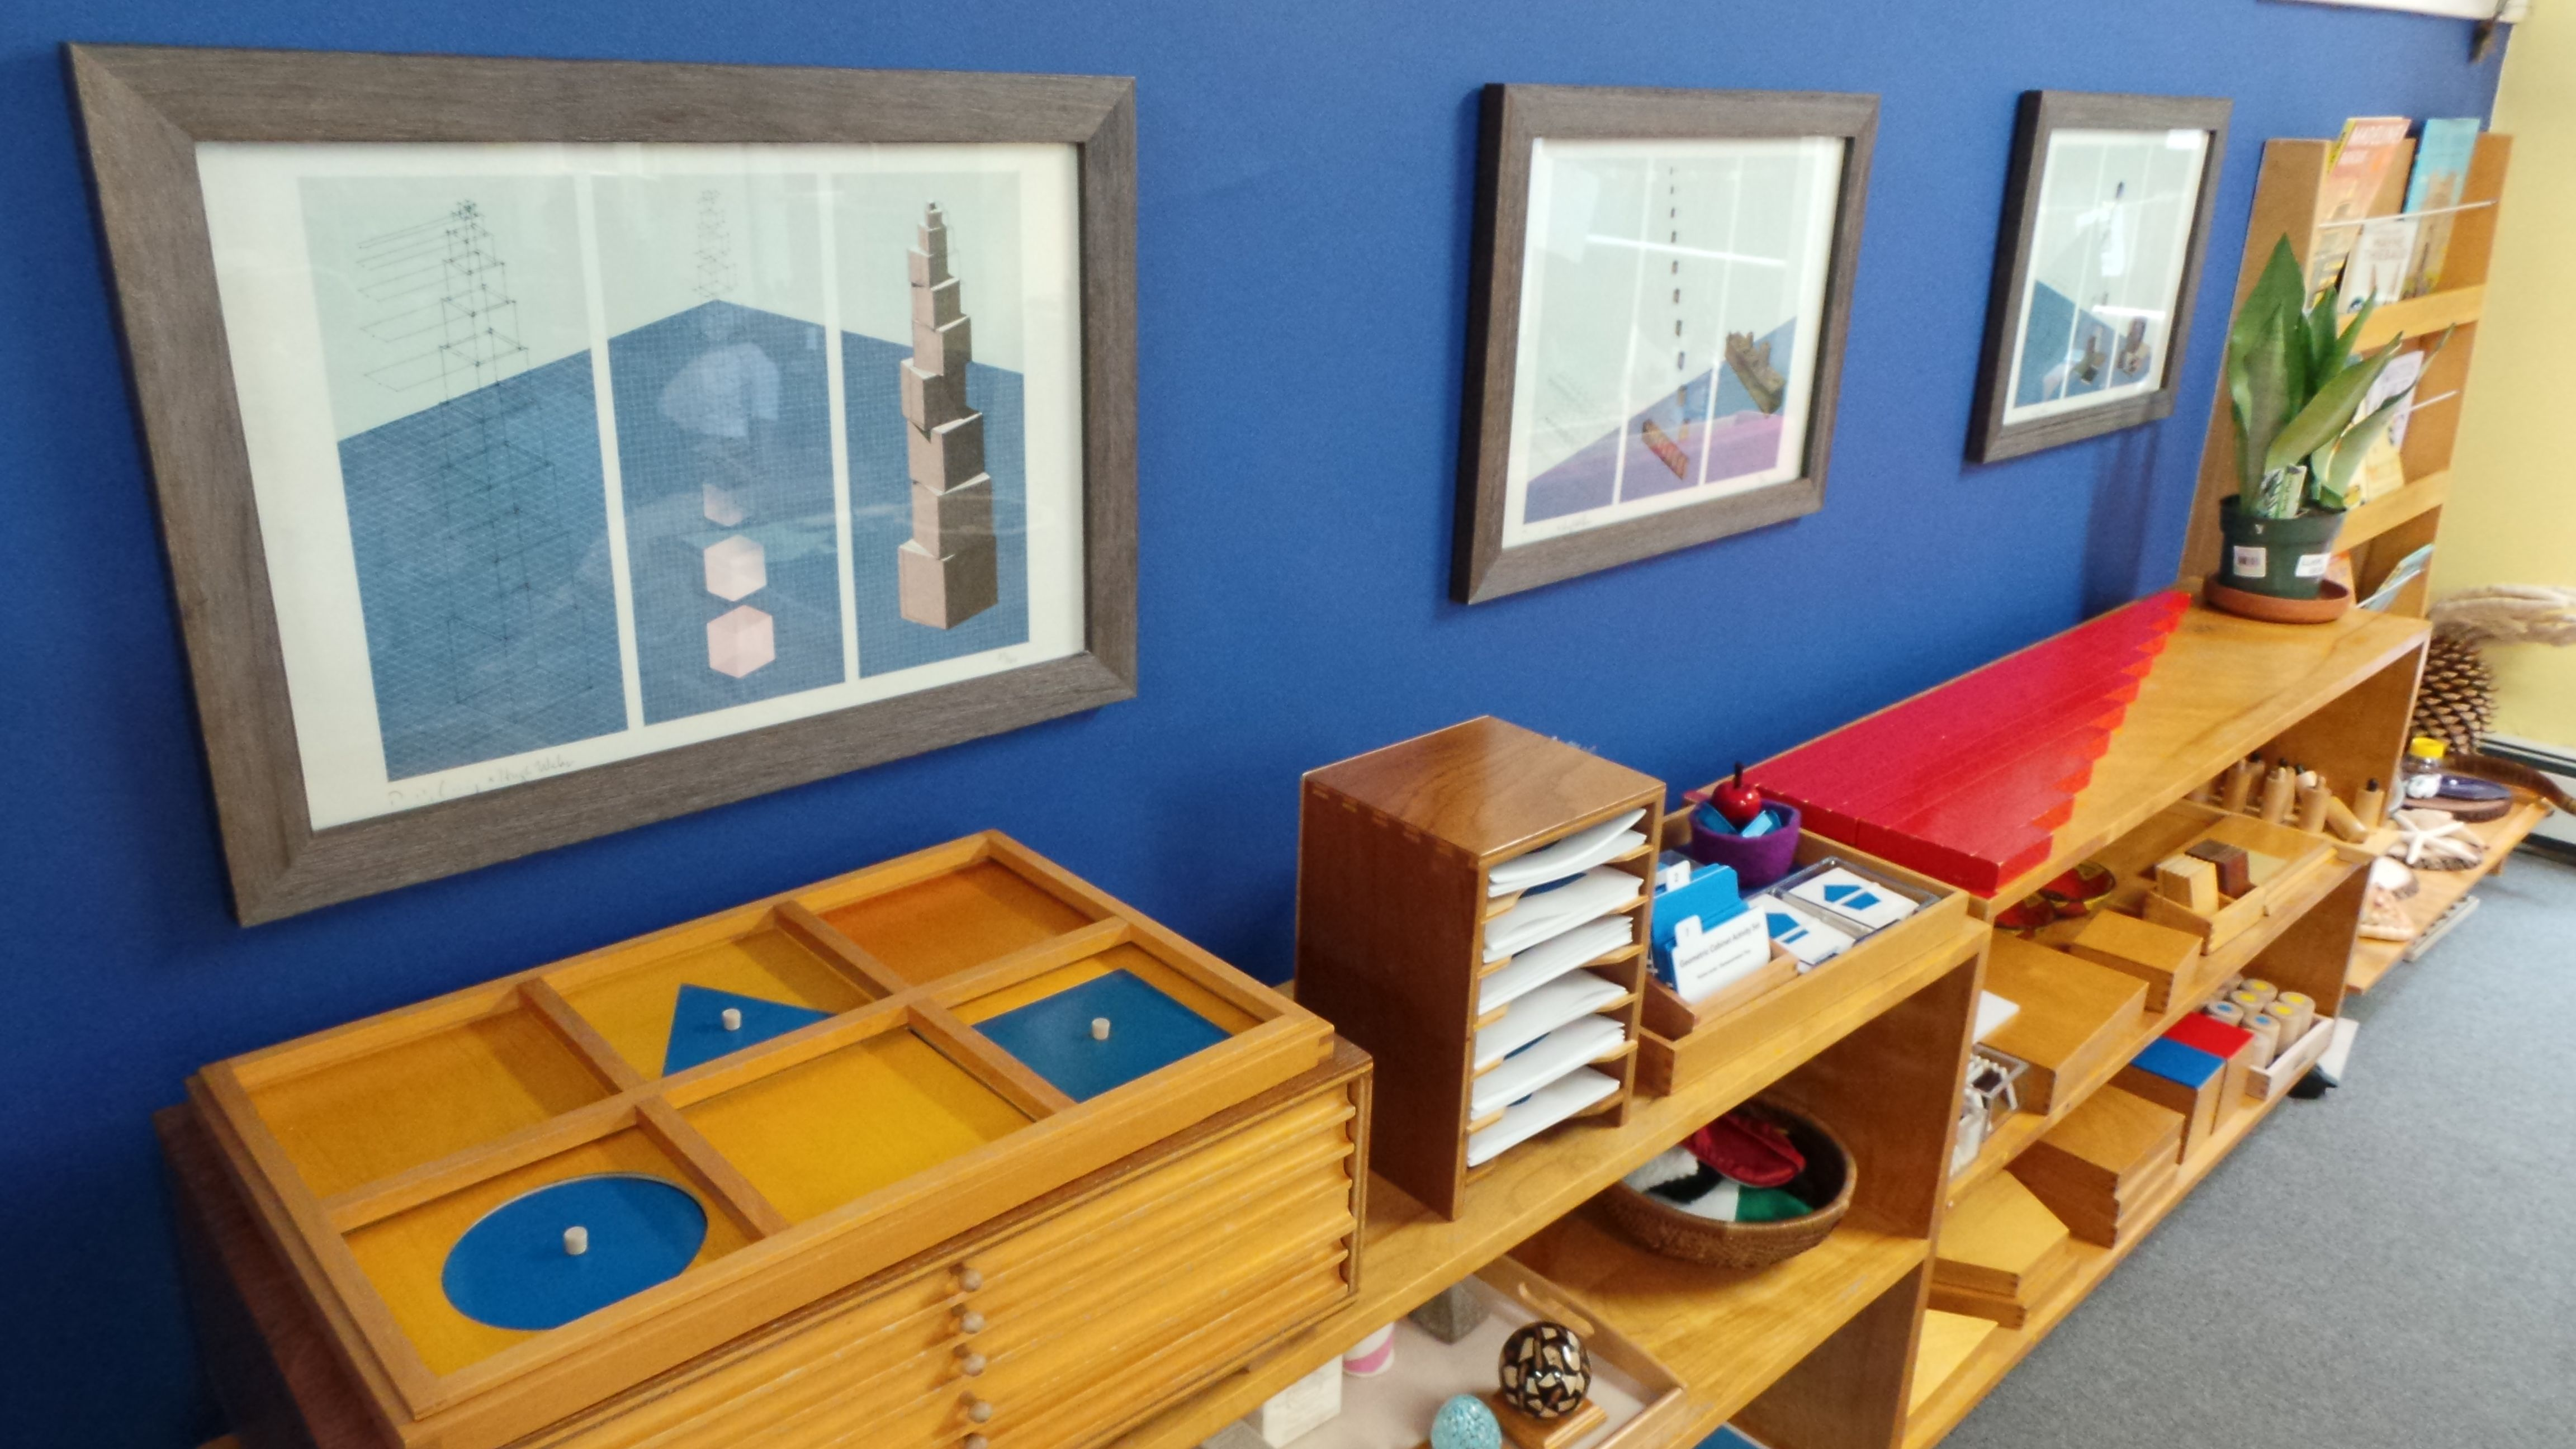 Montessorium Blueprints Framed Proudly In Our Classrooms